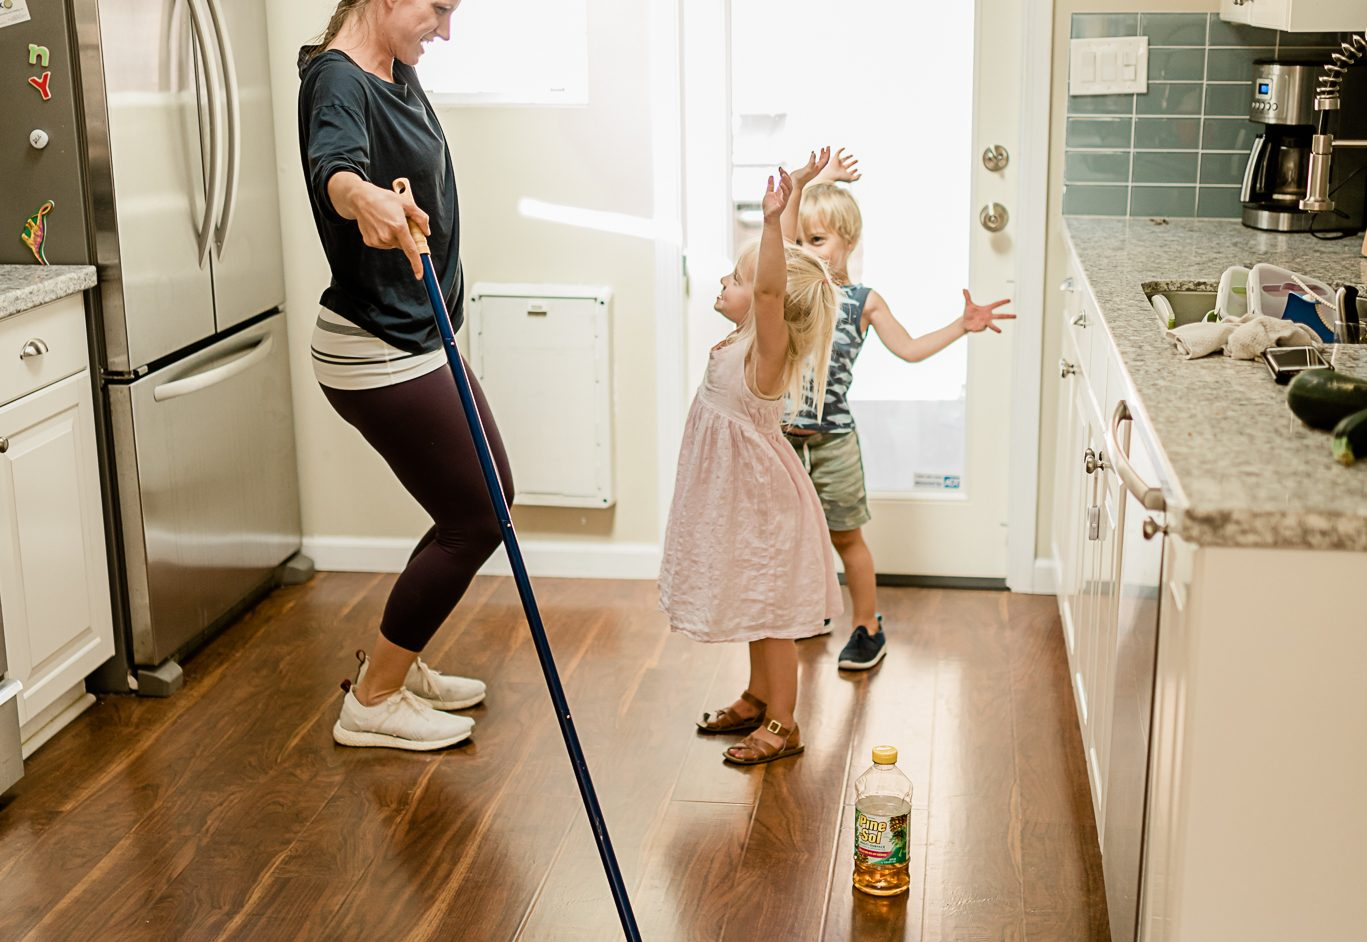 Clean With Pine Sol And Including Kids On Cleaning